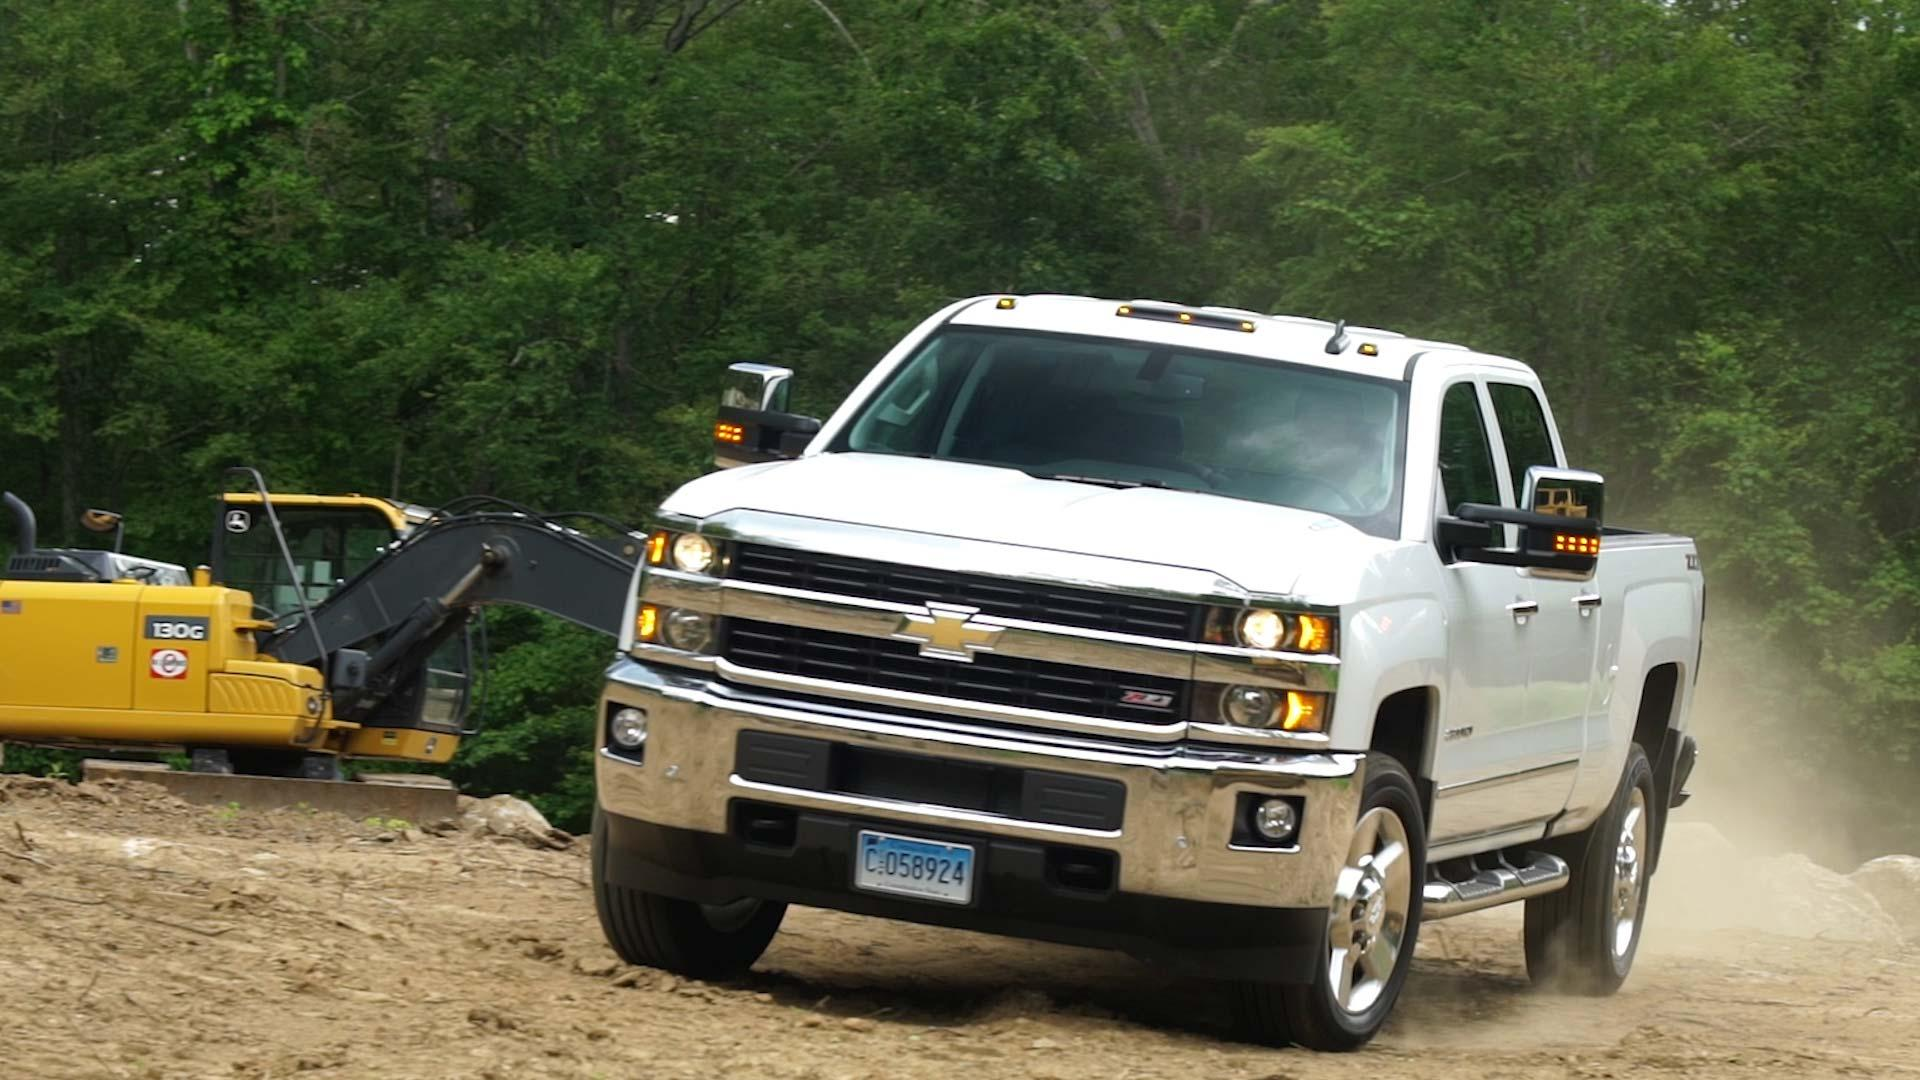 2018 Chevrolet Silverado 2500hd Reviews Ratings Prices Consumer 2007 Chevy Fuel Filter Reports